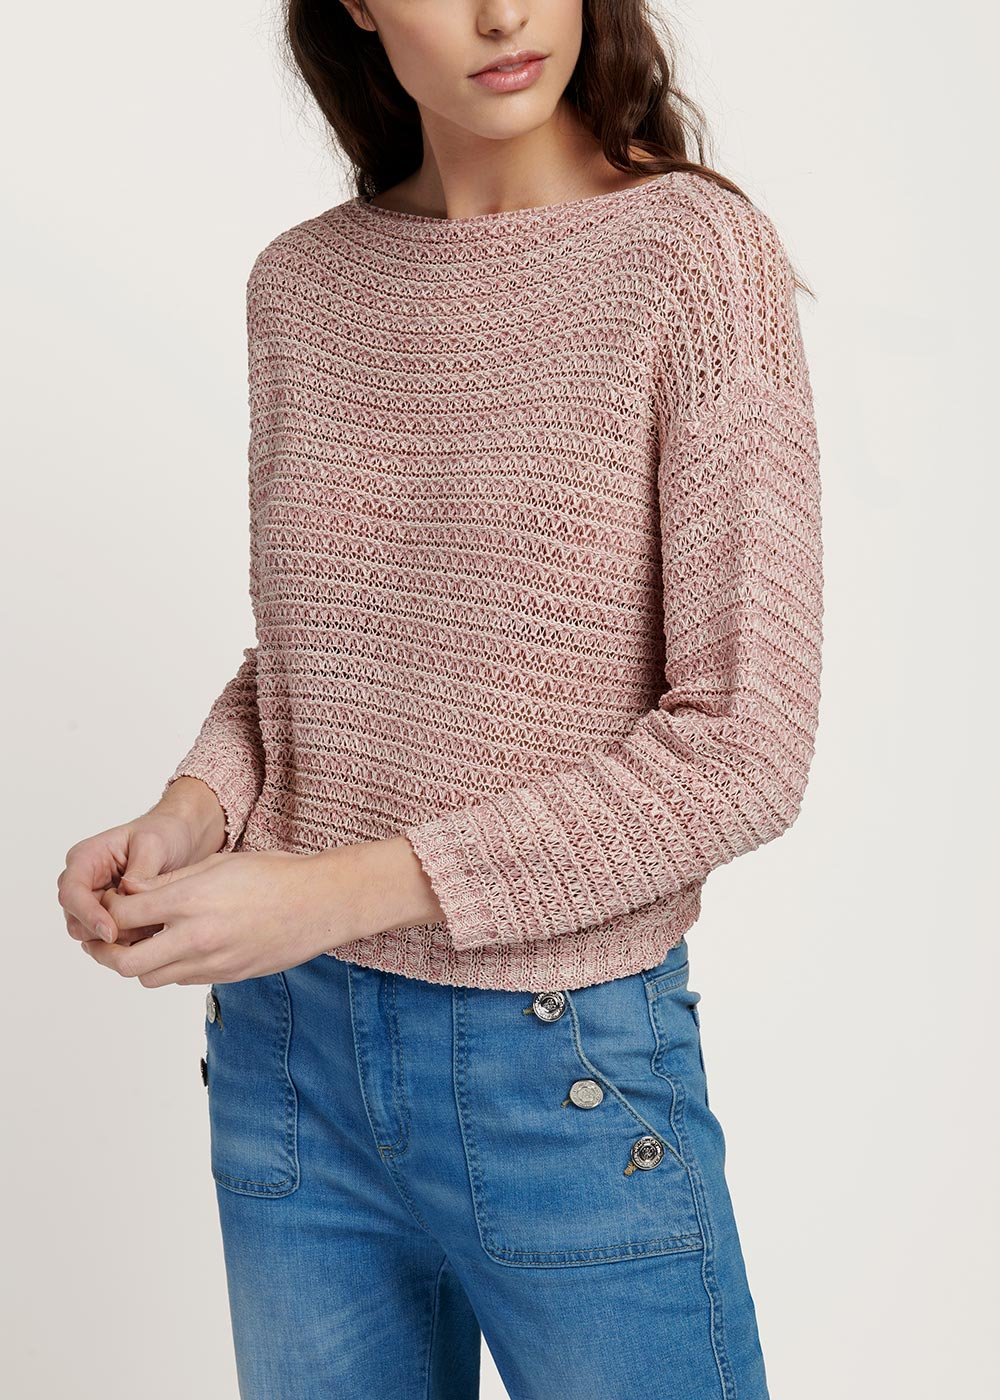 Morena cotton sweater with melange effect - Sepia / Light Beige	 - Woman